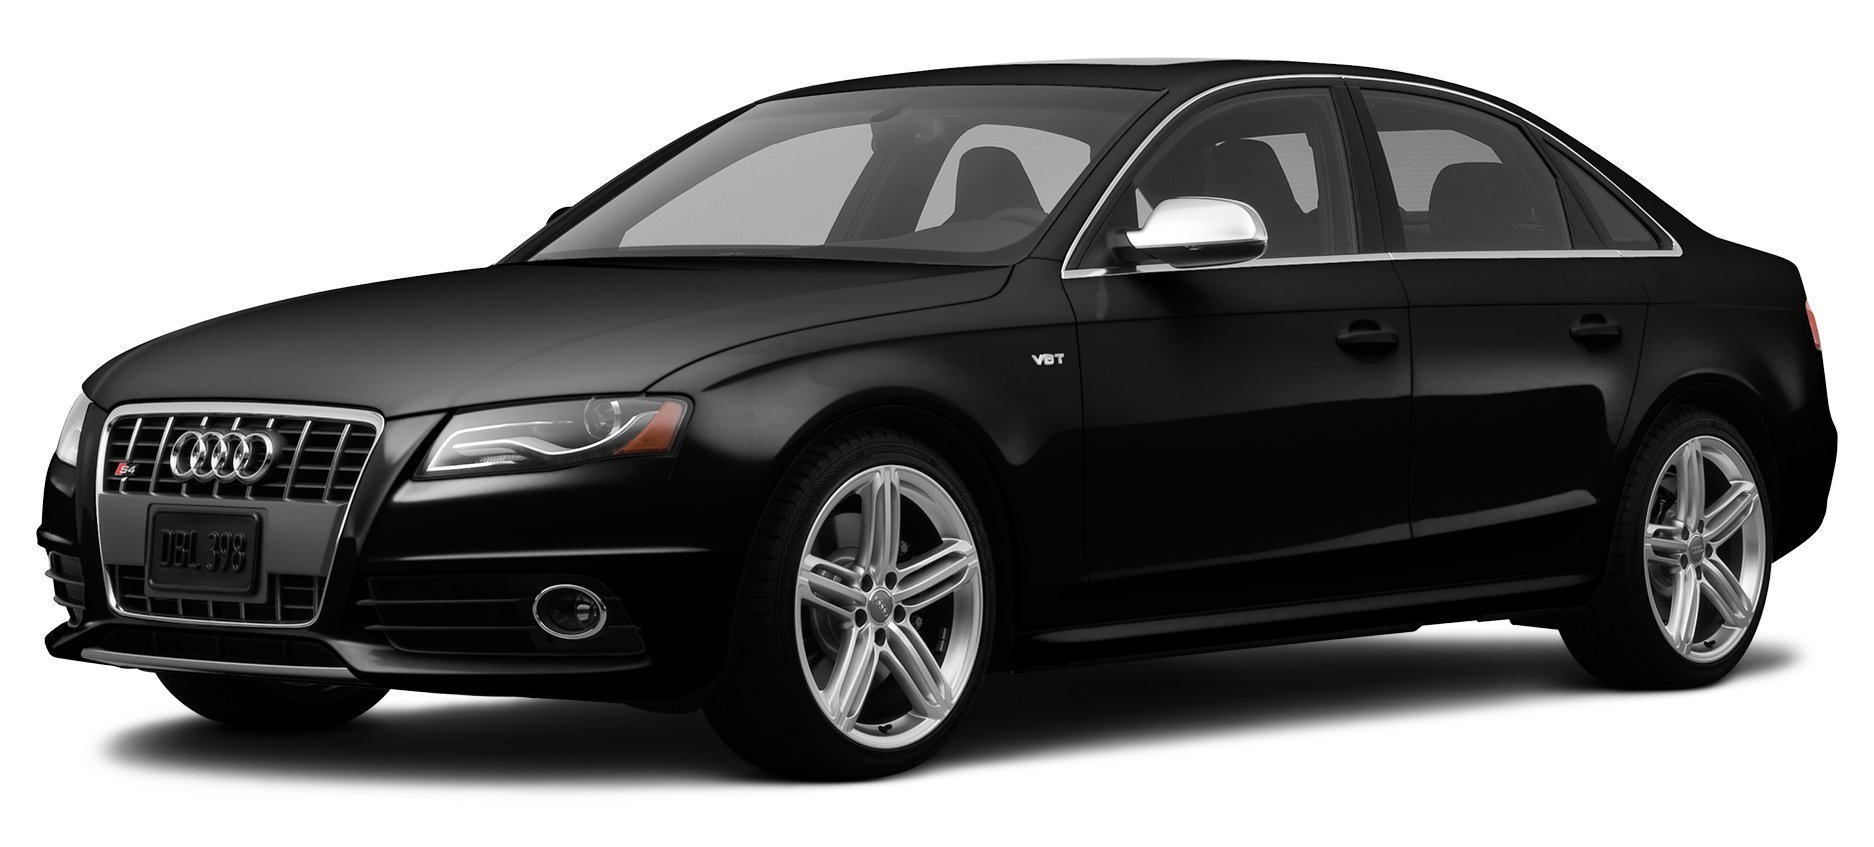 2012 Audi S4 Premium Plus, 4-Door Sedan Manual Transmission ...